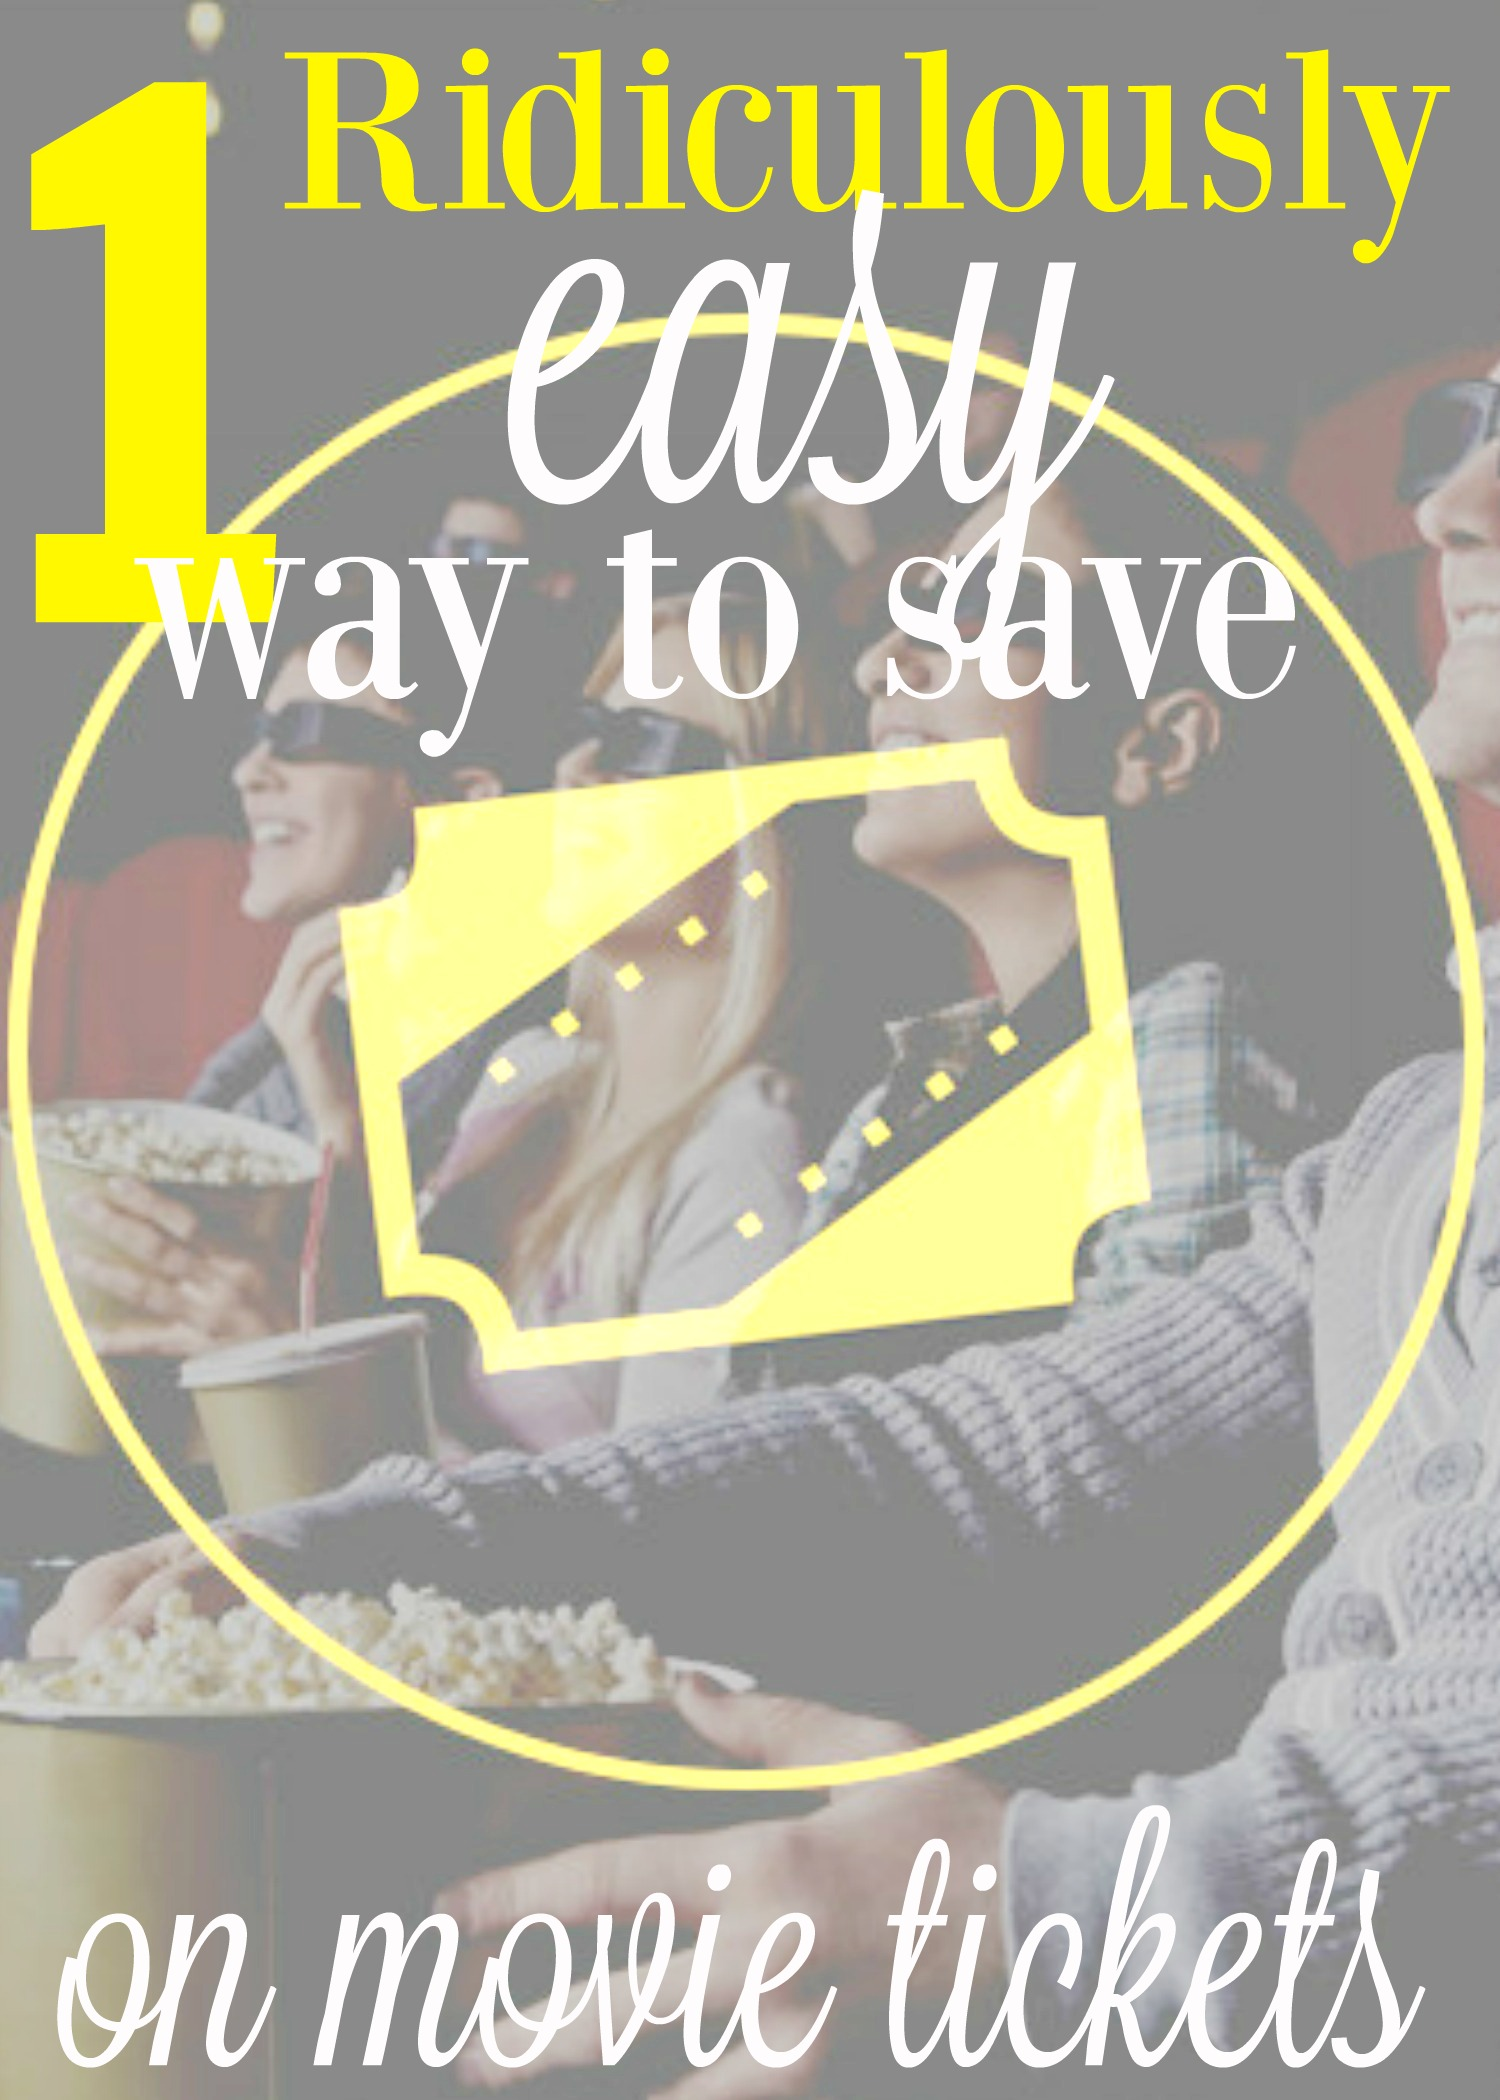 Find movie night ideas, couples, holidays gift ideas for less with this ridiculously easy way to get movie tickets for atleast $5 off per ticket. And, you;ll also get a FREE movie theater popcorn, theaters LOVE this deal! https://couponcravings.com